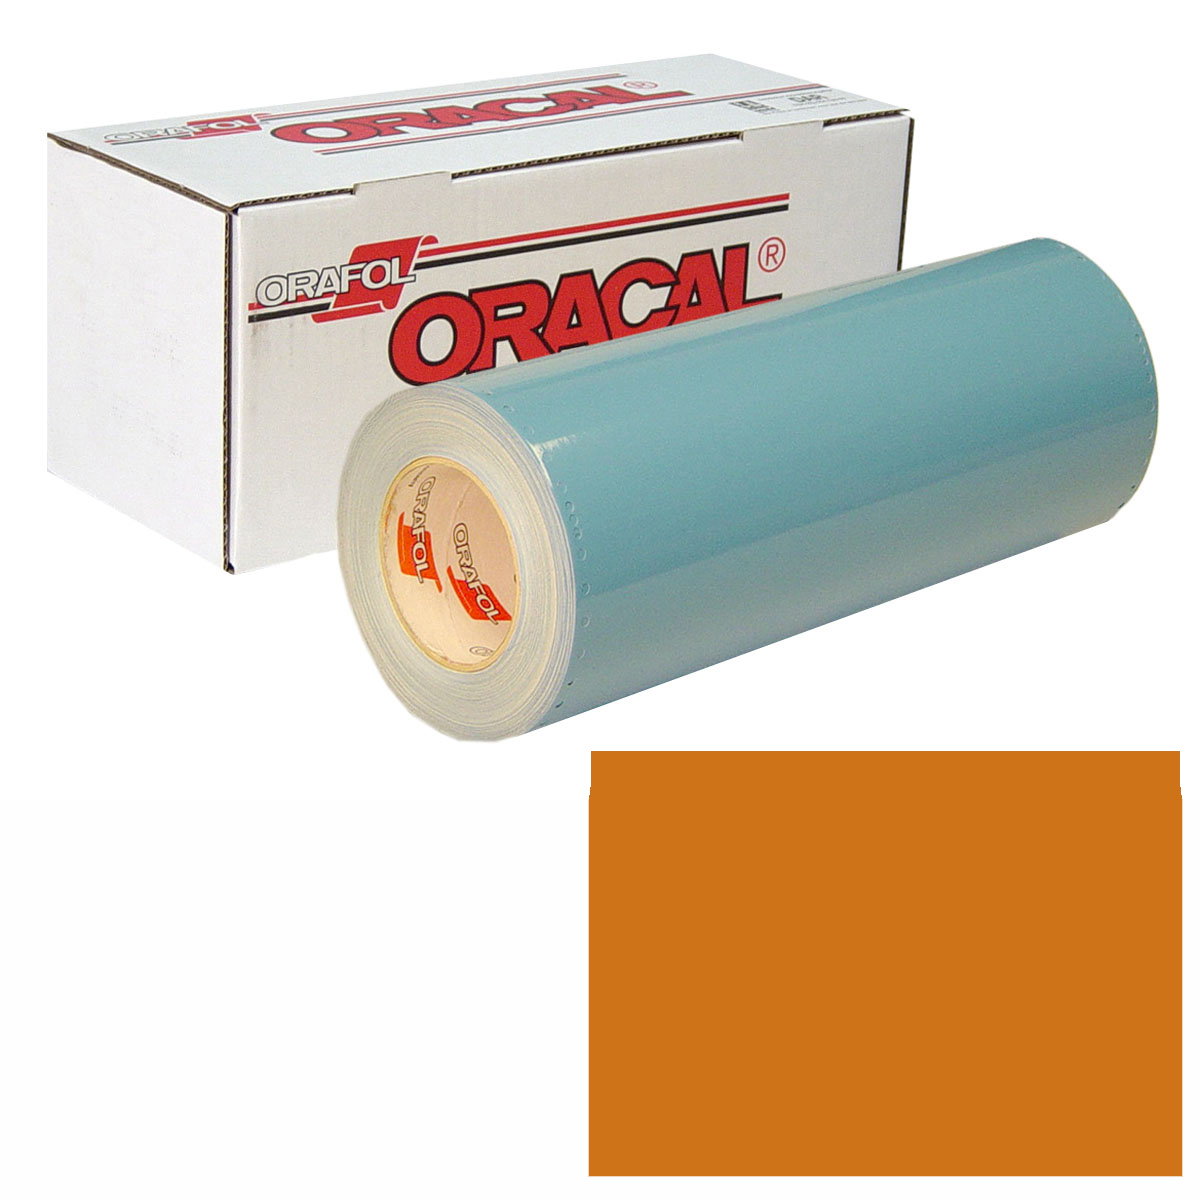 ORACAL 751 30in X 50yd 083 Nut Brown